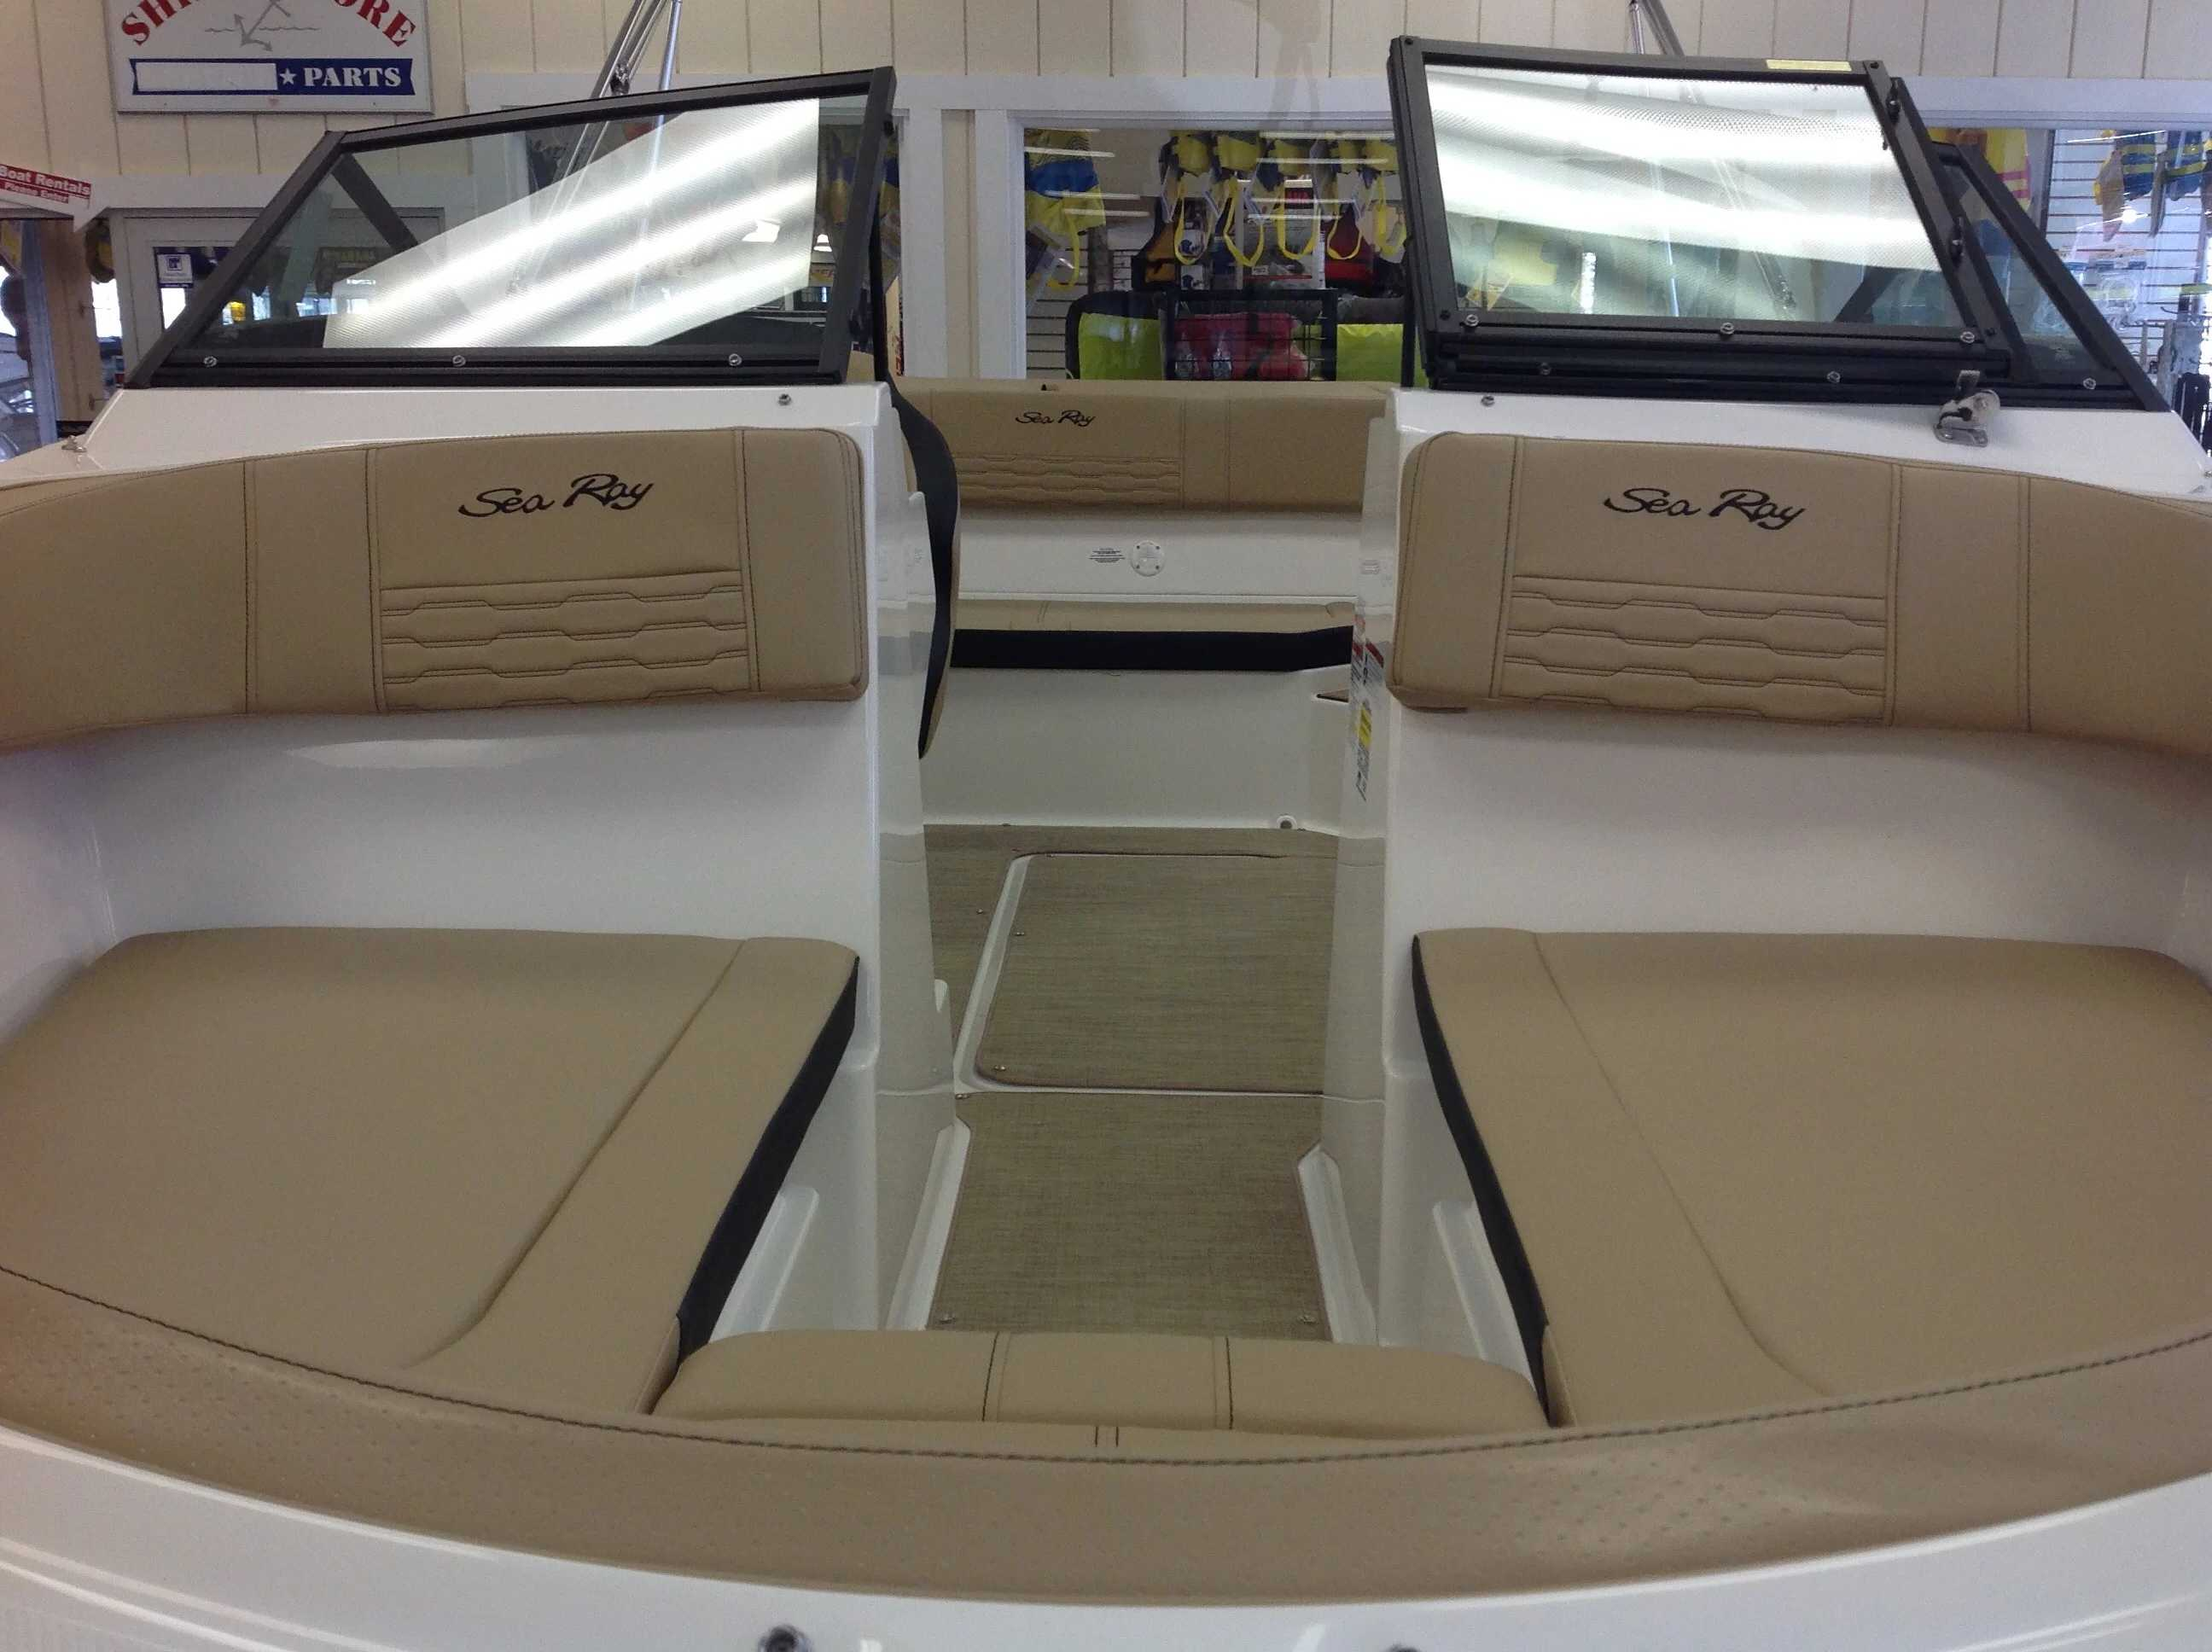 2021 Sea Ray boat for sale, model of the boat is 190 SPX & Image # 3 of 12